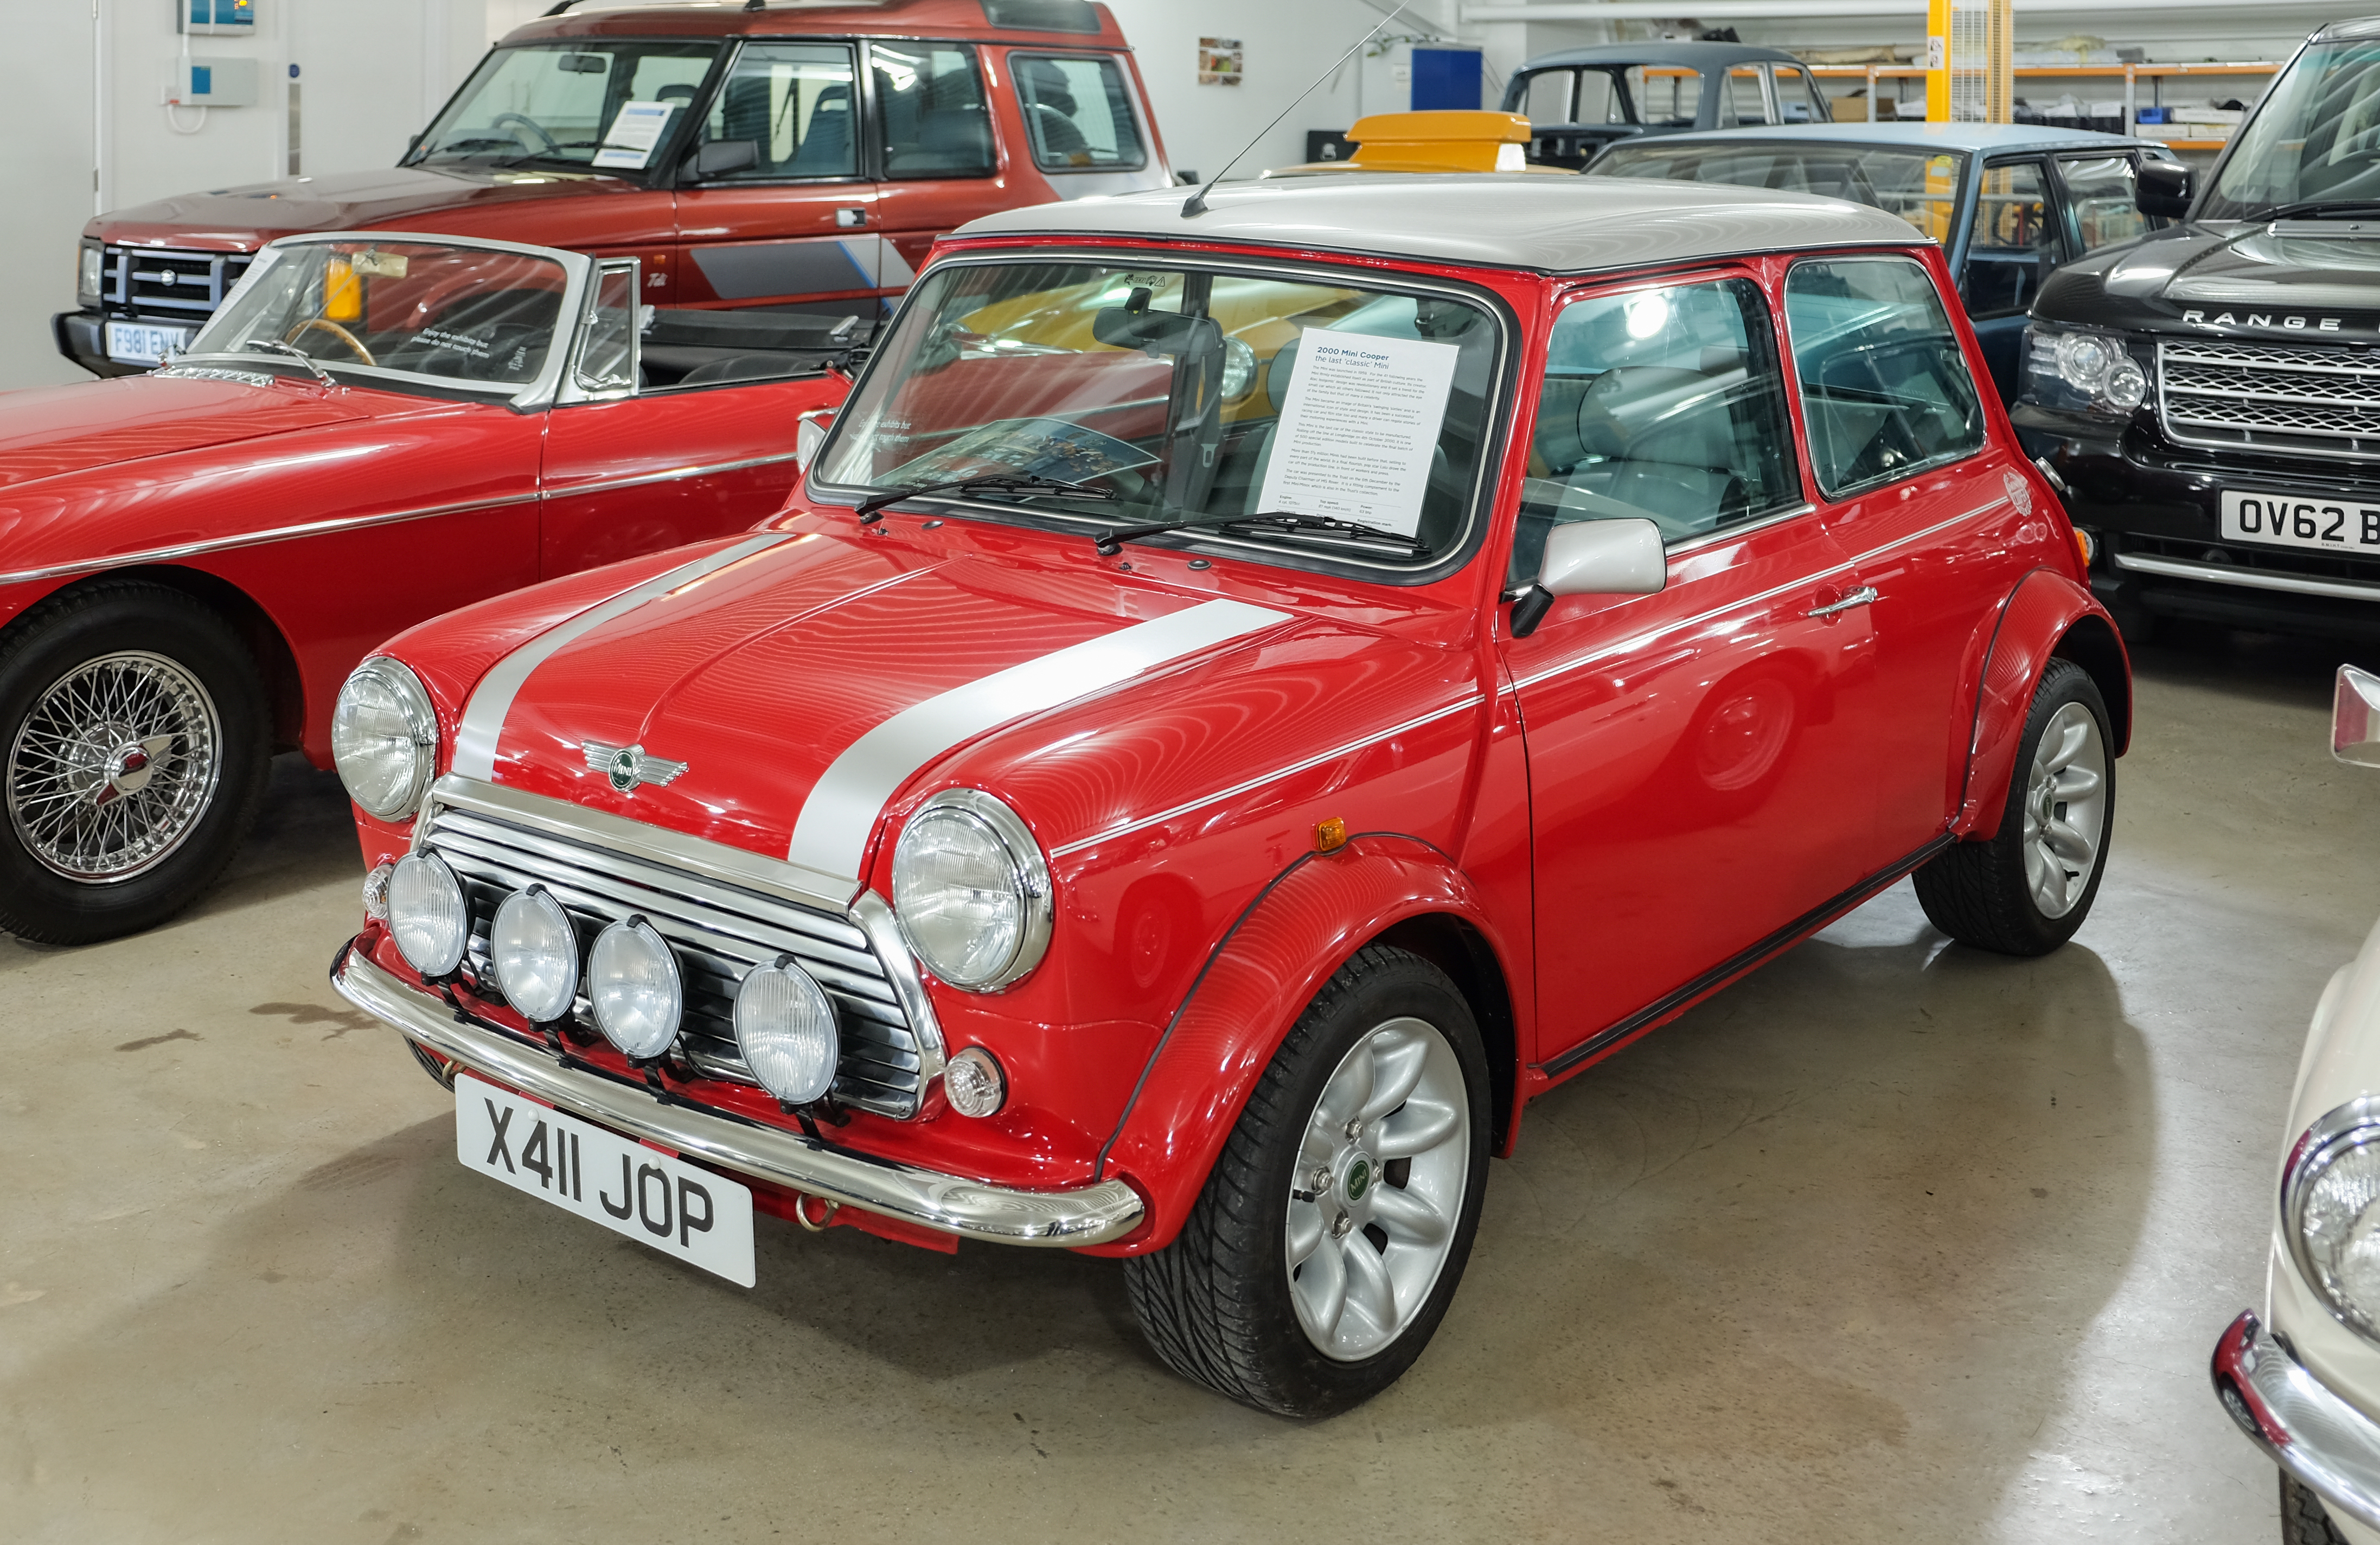 Filerover Mini Cooper 2000 X411jopjpg Wikimedia Commons